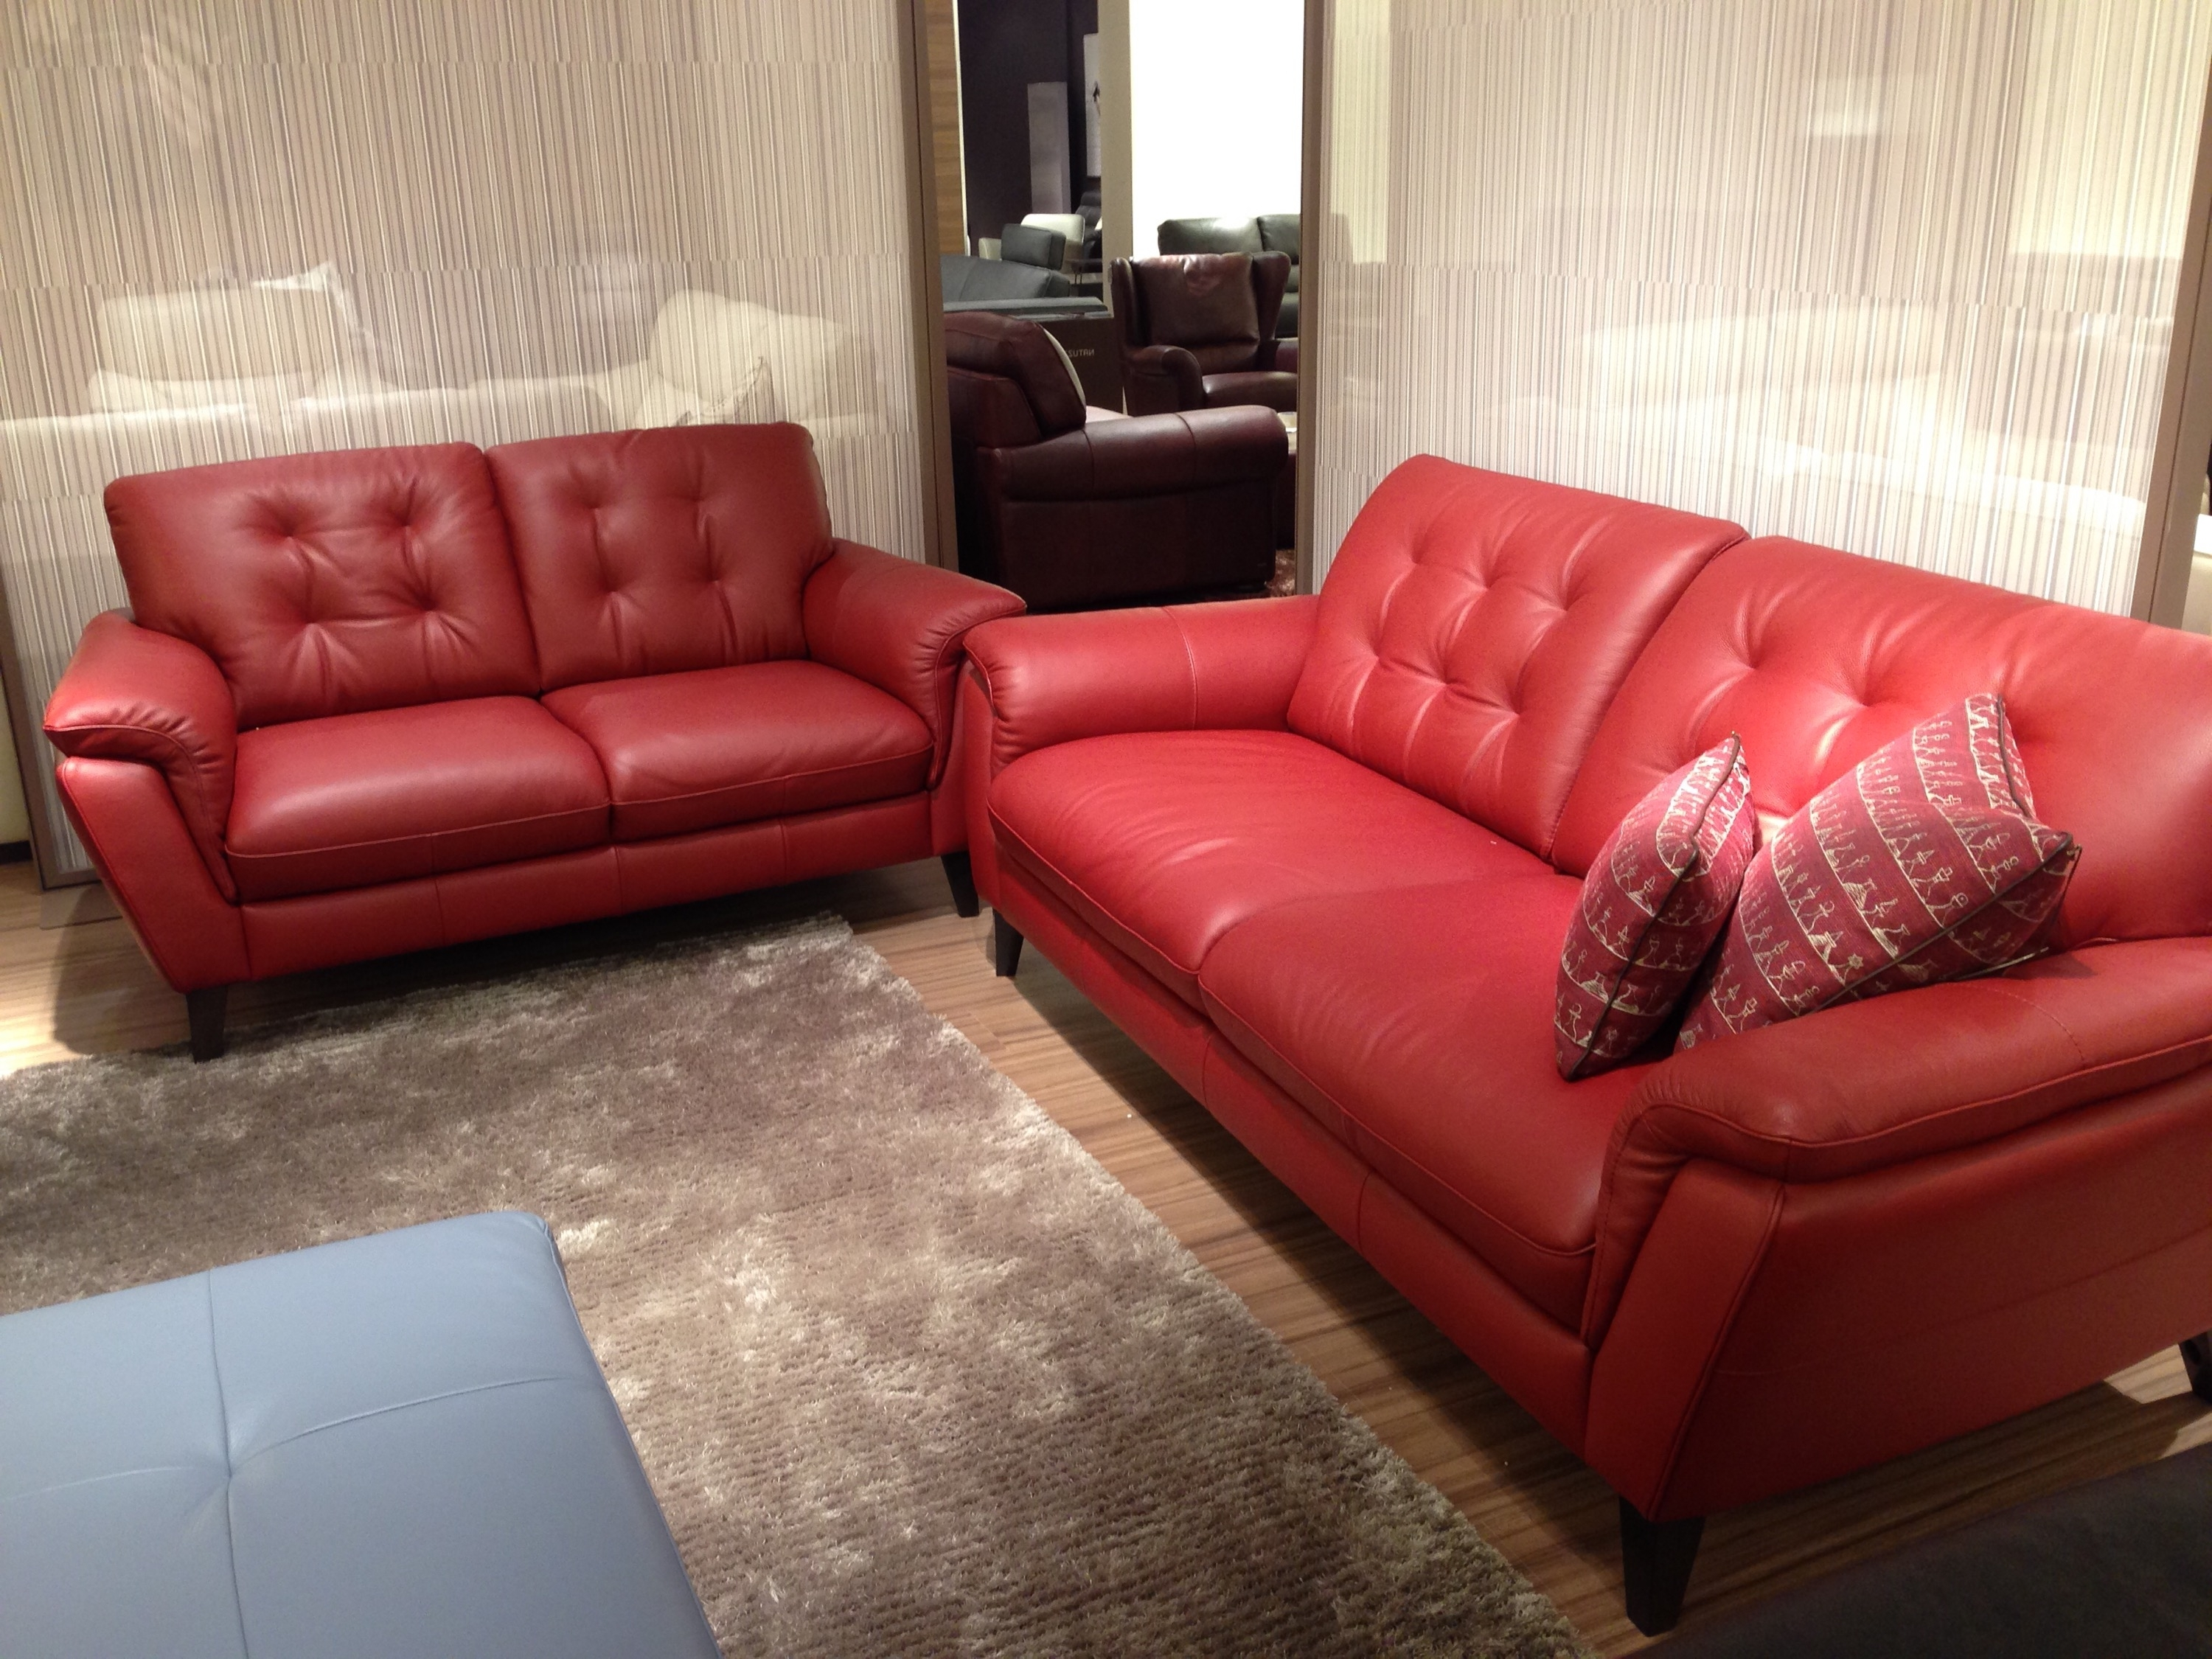 Manchester Sofas Inside 2019 Voted Number One Sofa And Furniture Store In The Manchester Area (Gallery 17 of 20)